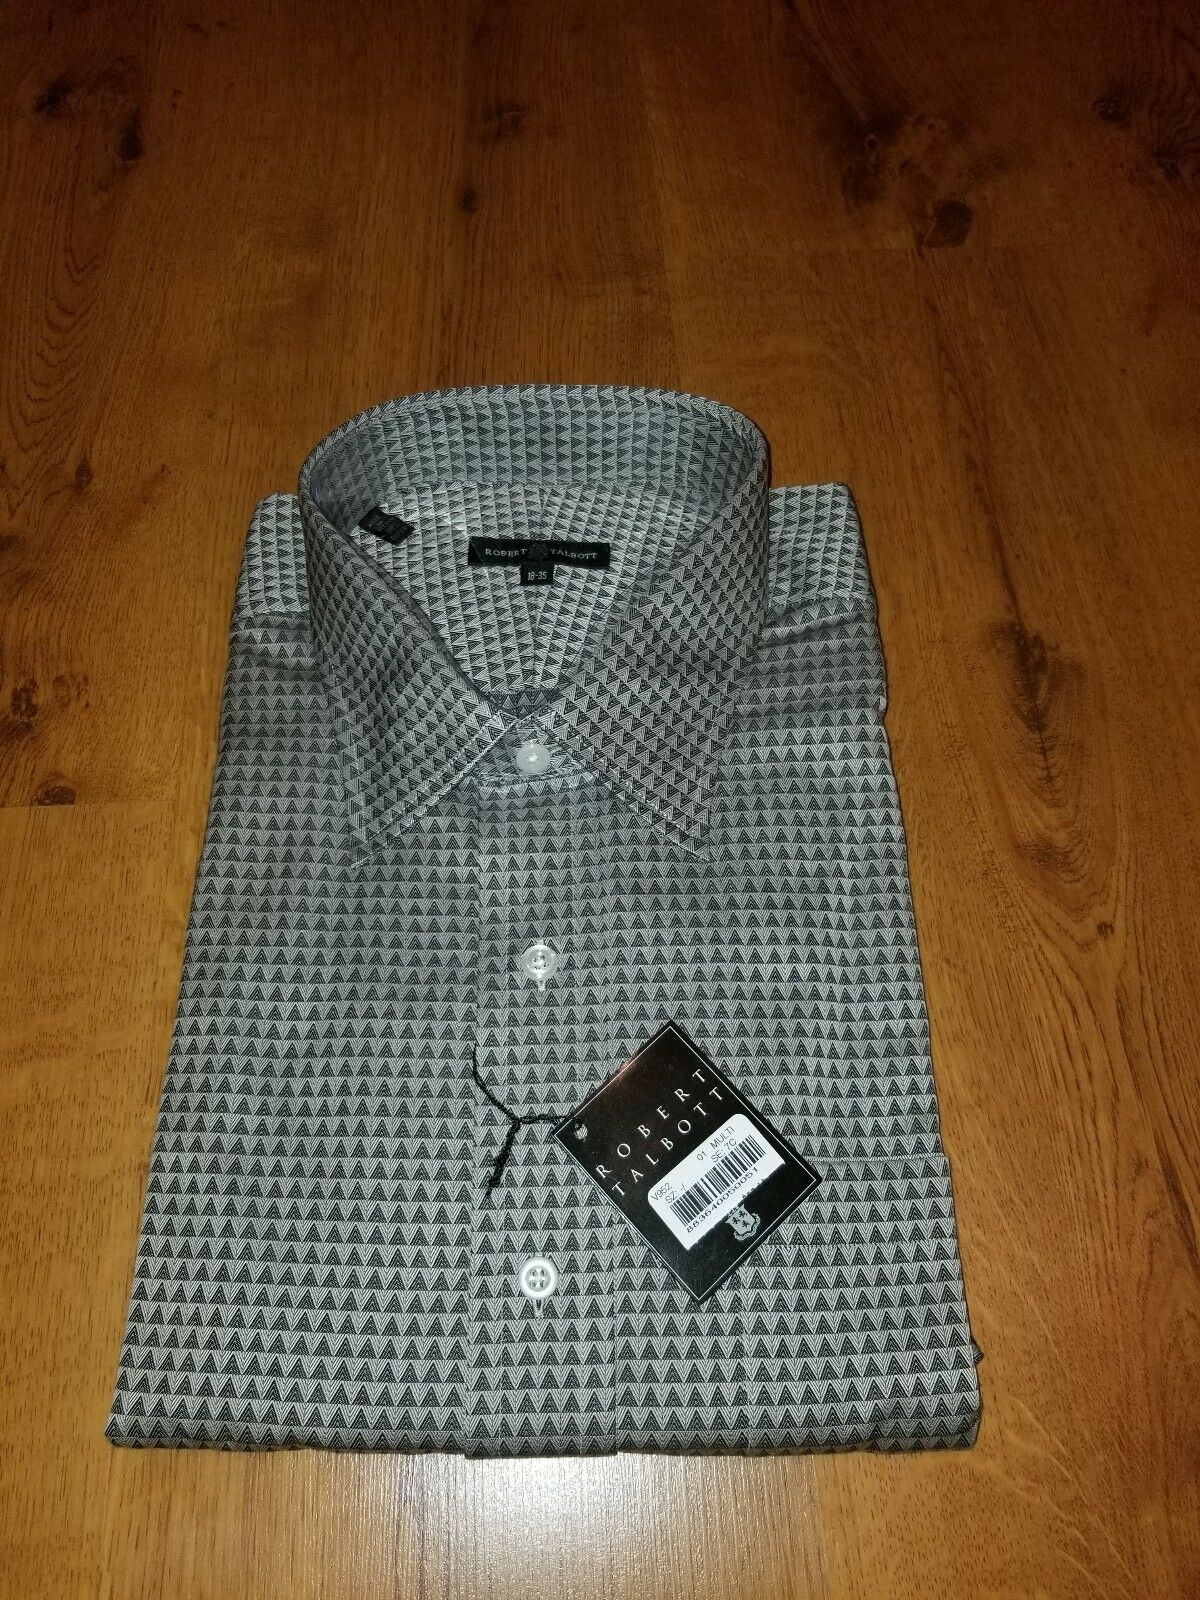 ROBERT TALBOTT Carmel Dress Shirt 18 x 35 100% Cotton